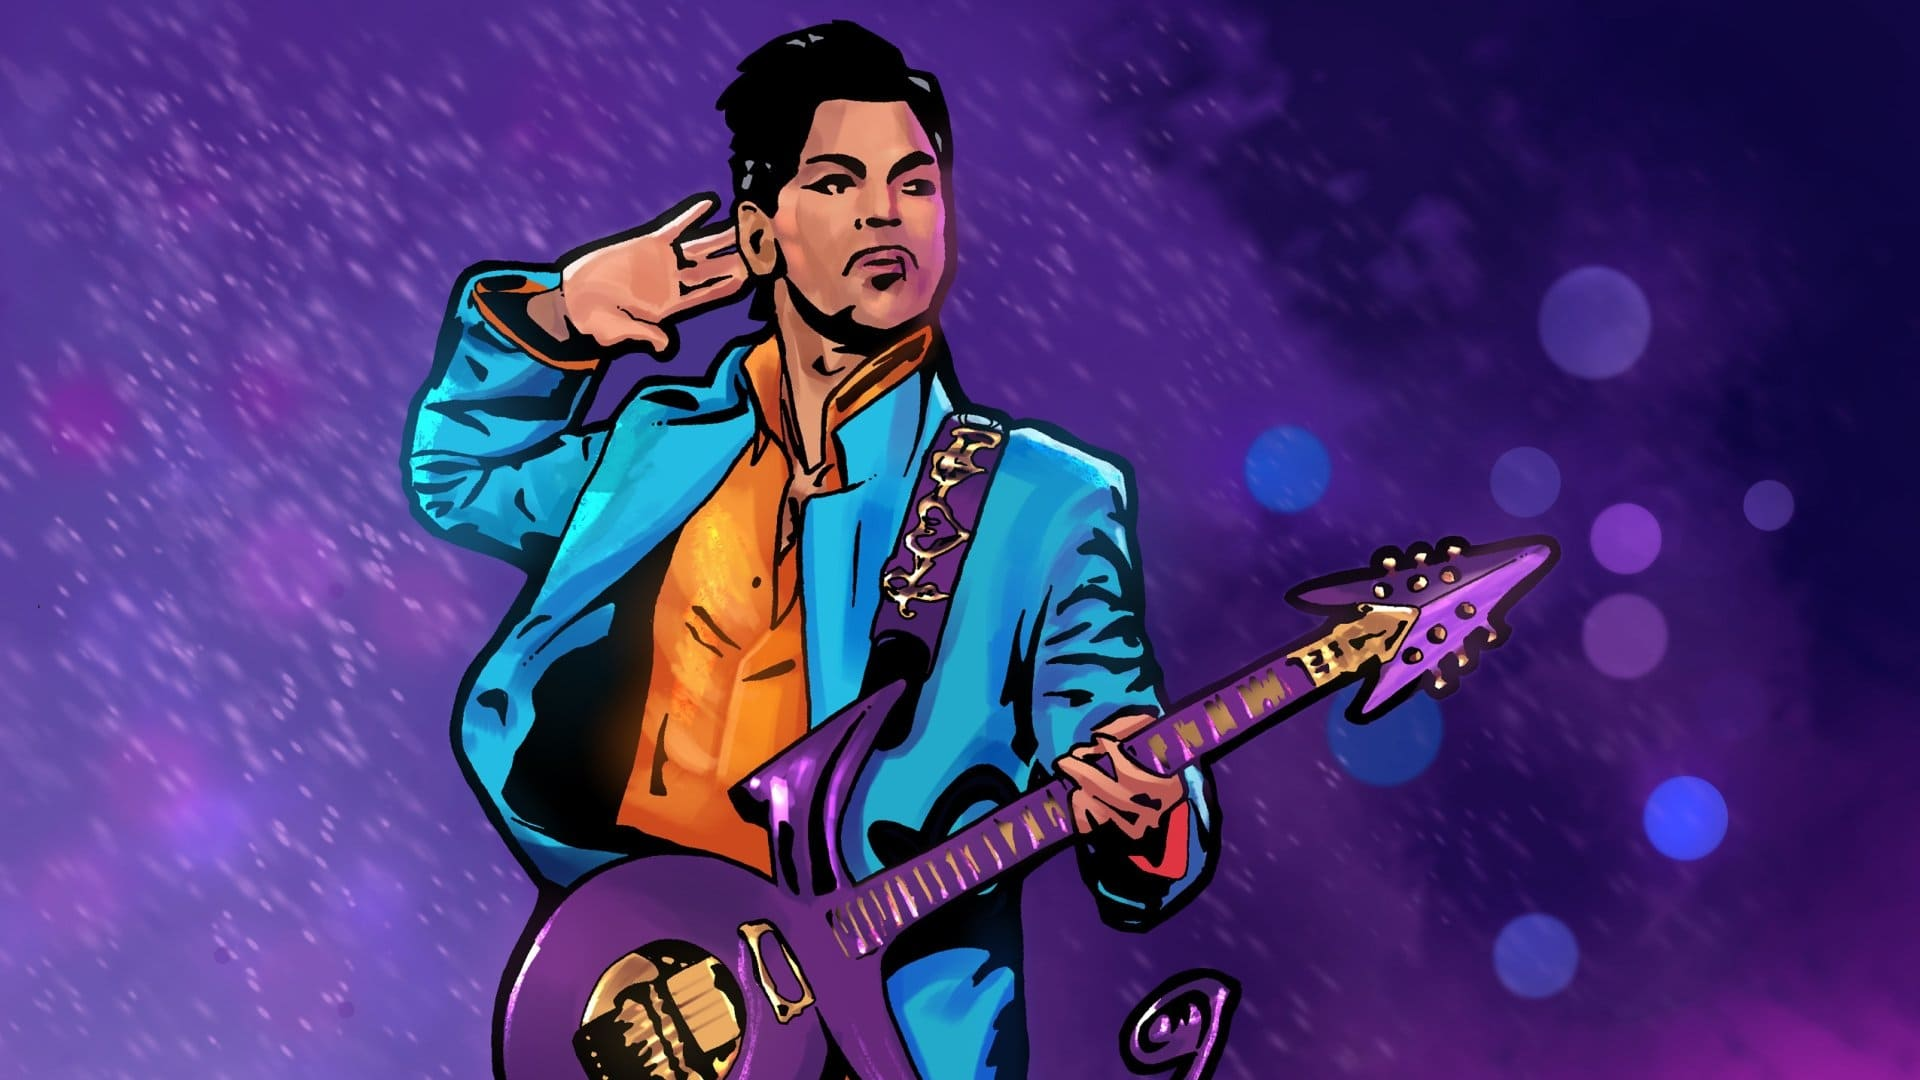 Prince the singer pictures